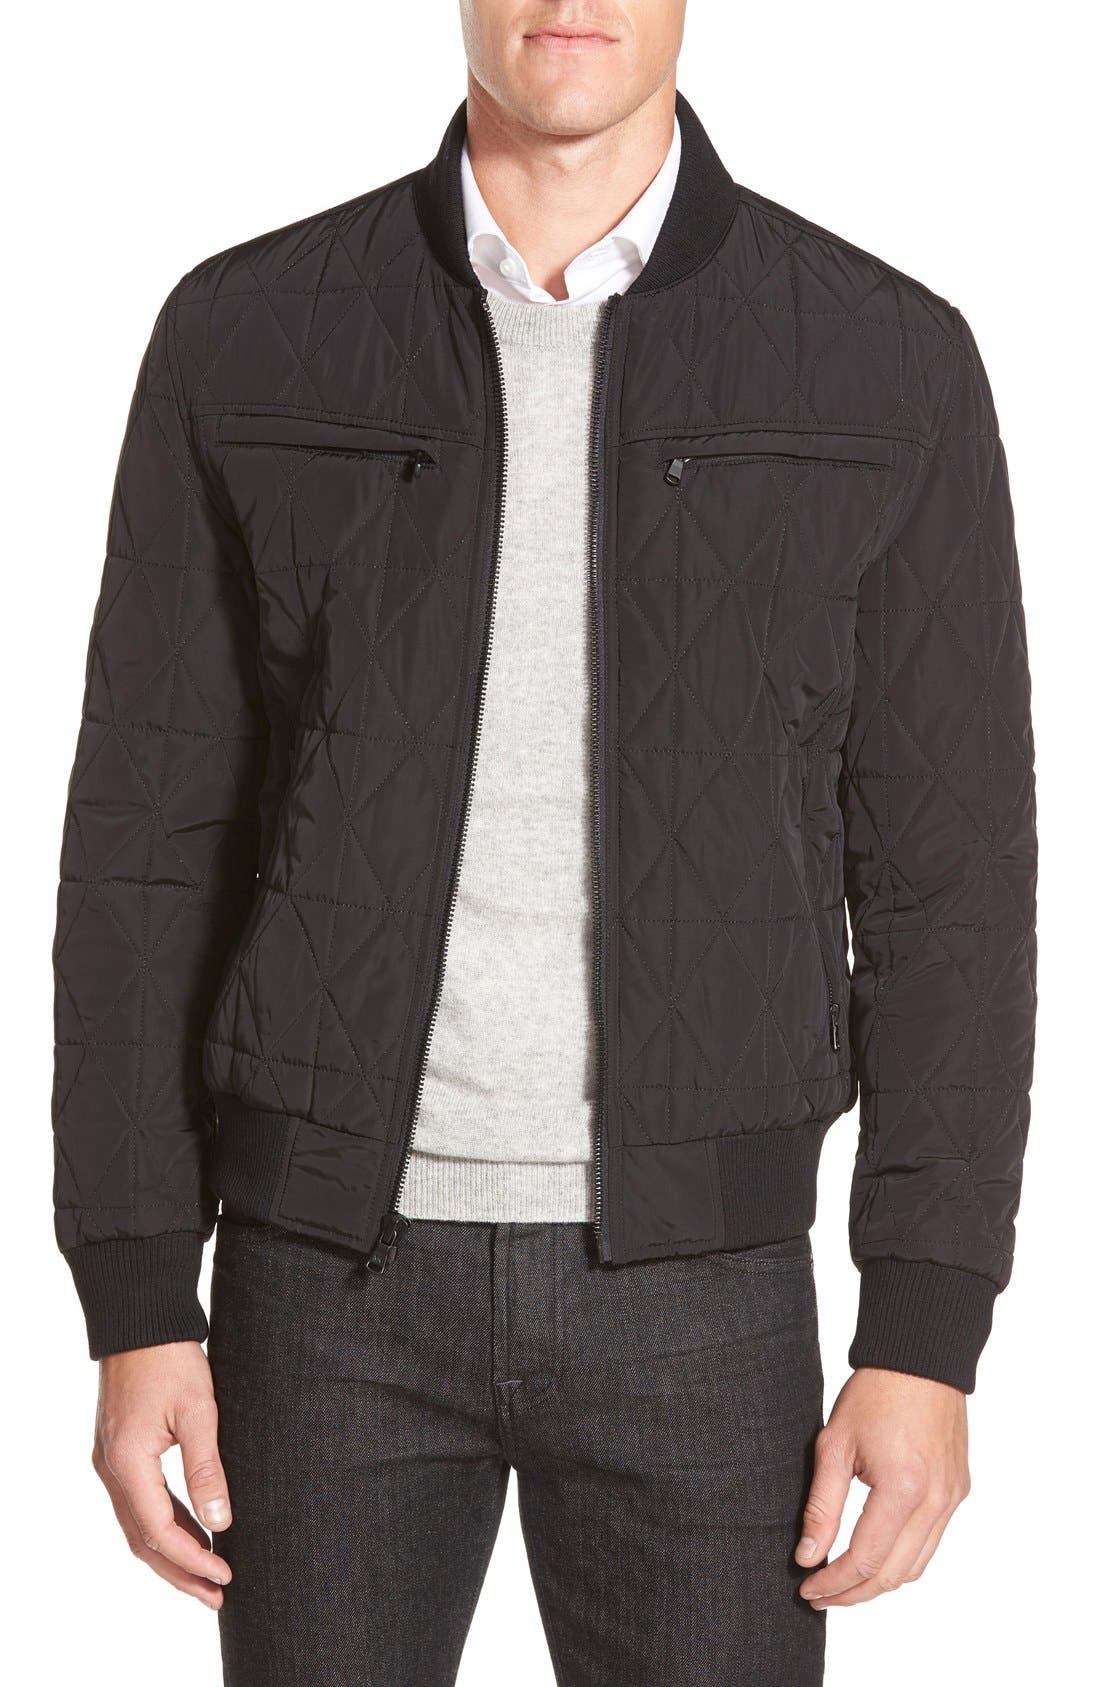 Diamond Quilted Zip Front Jacket,                             Main thumbnail 1, color,                             001